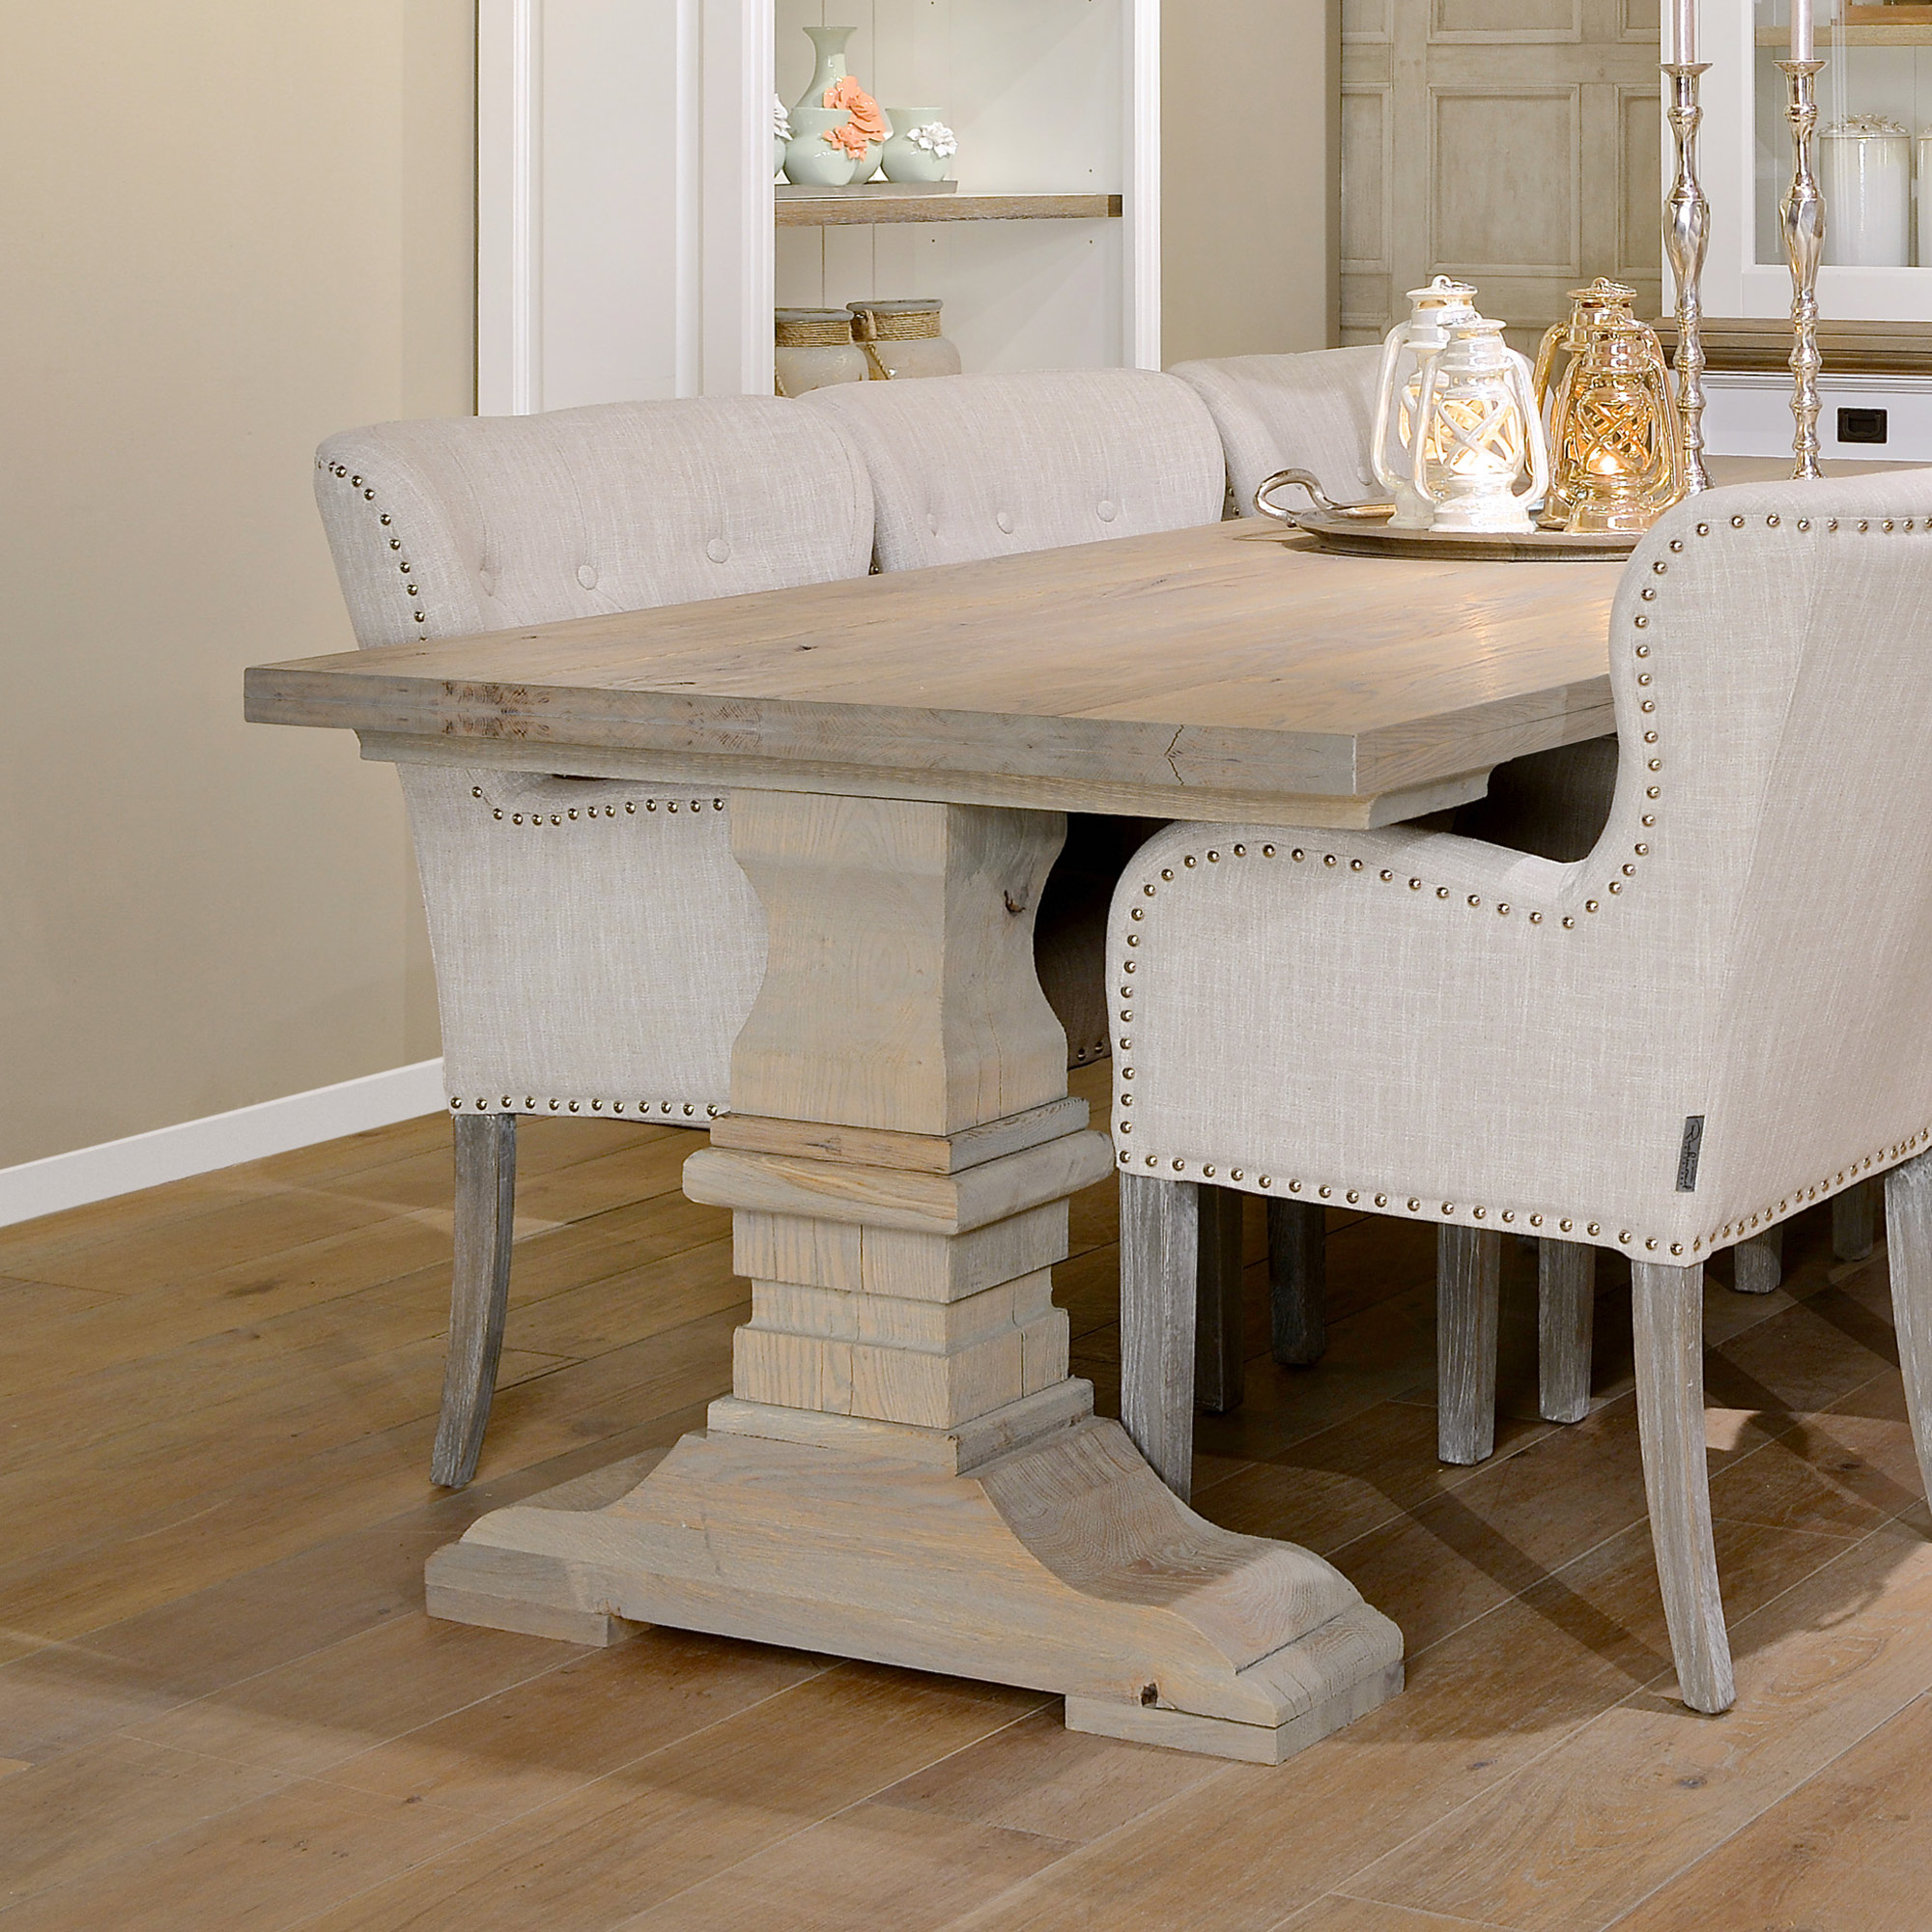 Lovely Castle Furniture – Furniture Designs Gallery With Regard To Most Popular Hearst Oak Wood Dining Tables (Image 18 of 25)